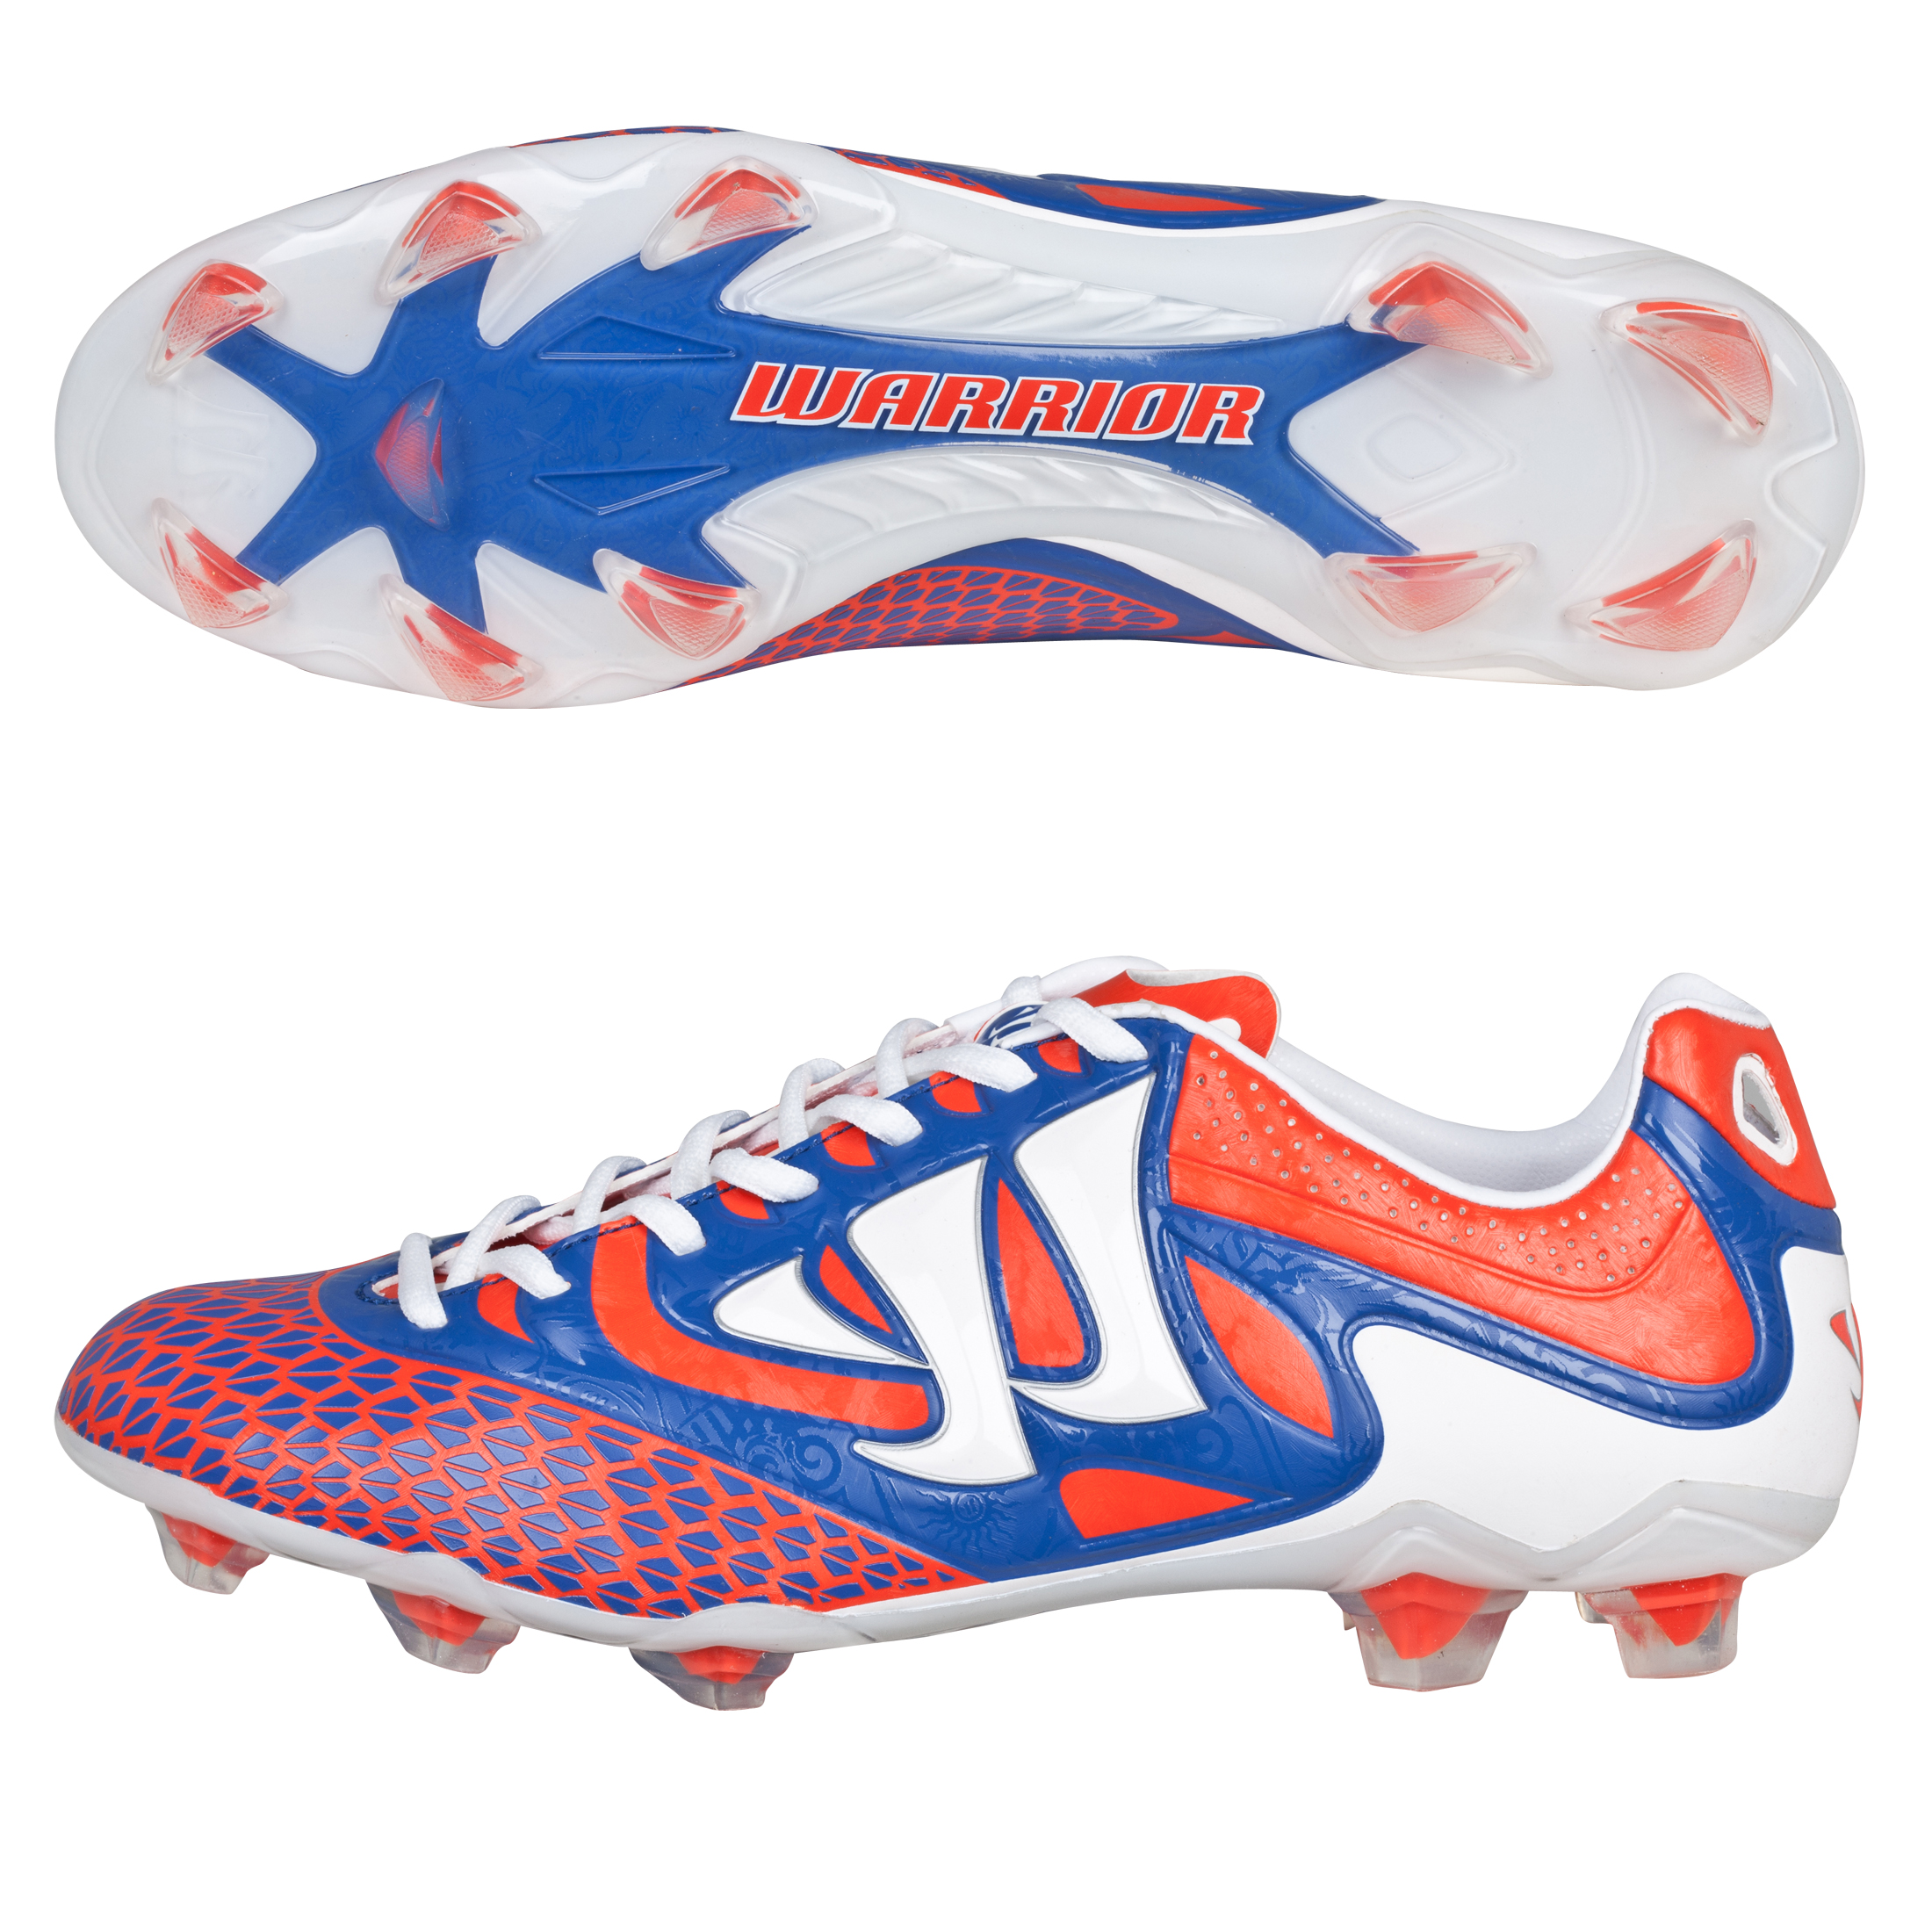 Warrior Skreamer Combat FG Footbal Boots - Spicey orange/baja blue/white Orange